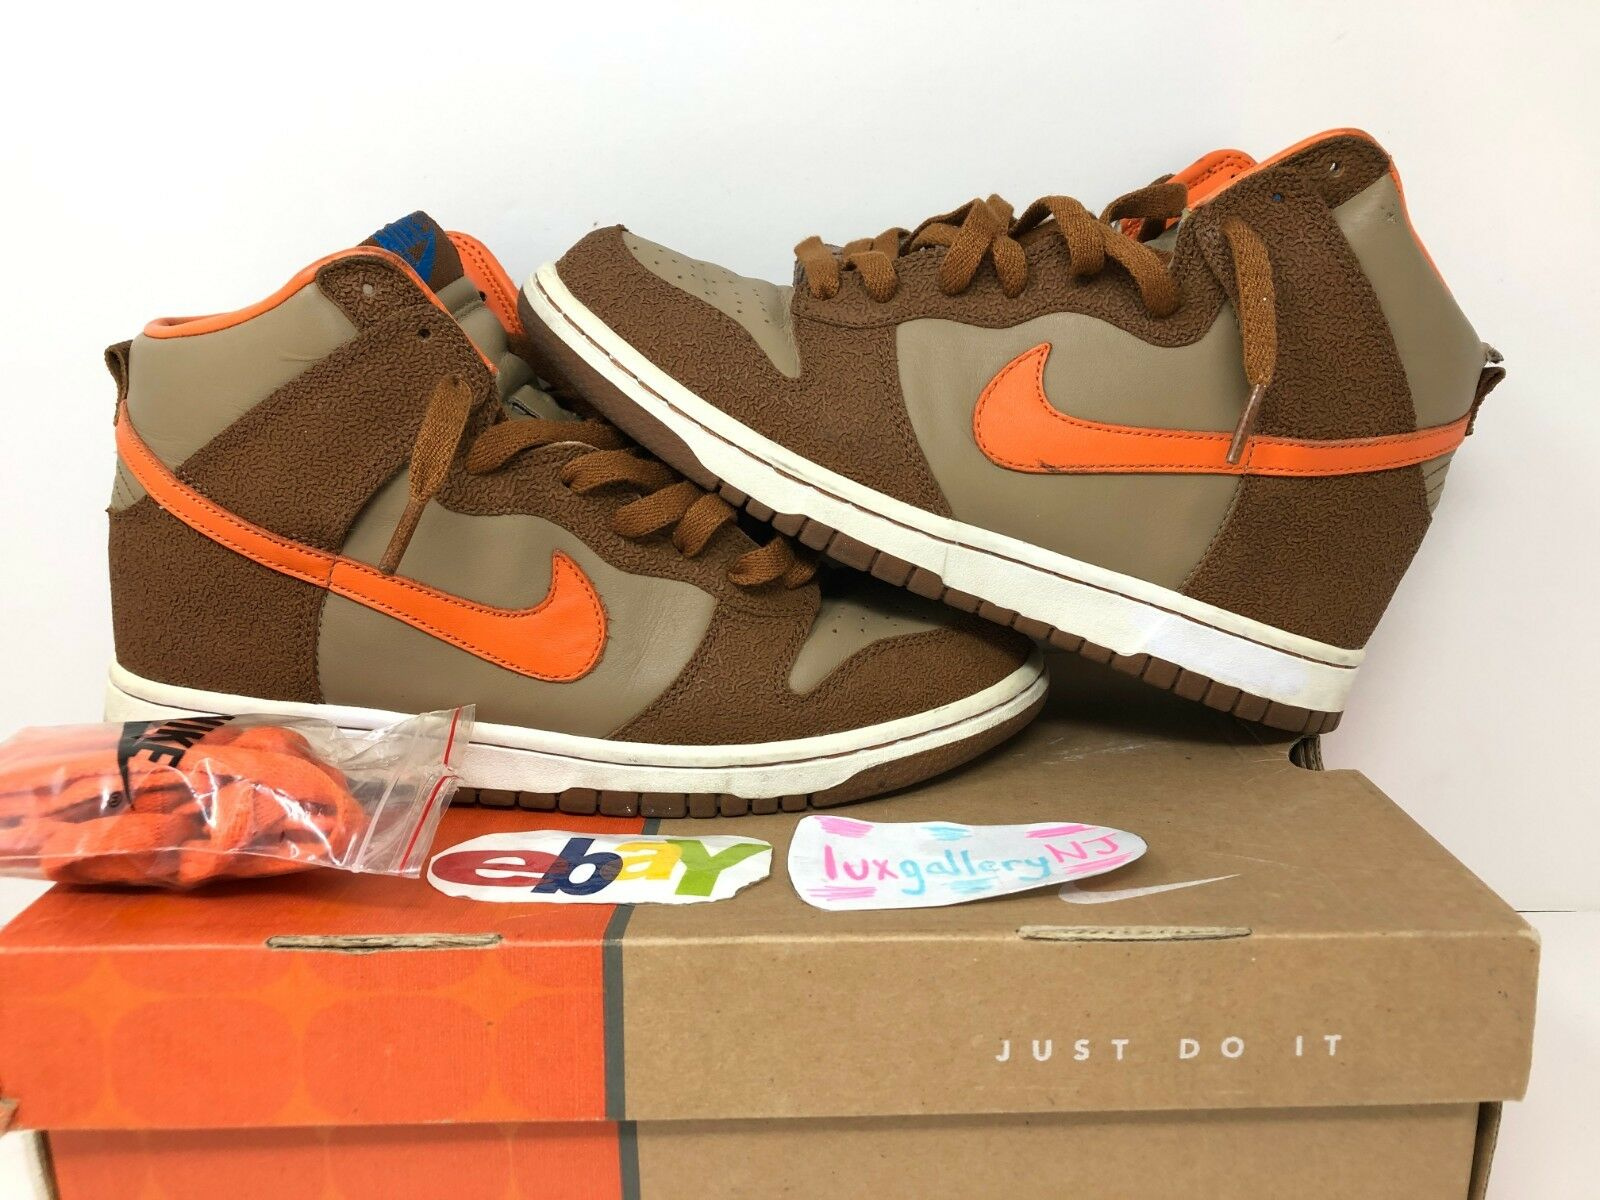 2006  Nike Dunk High The Thing Fantastic Four Pack US 8 (Usato) Marroneee arancio  edizione limitata a caldo